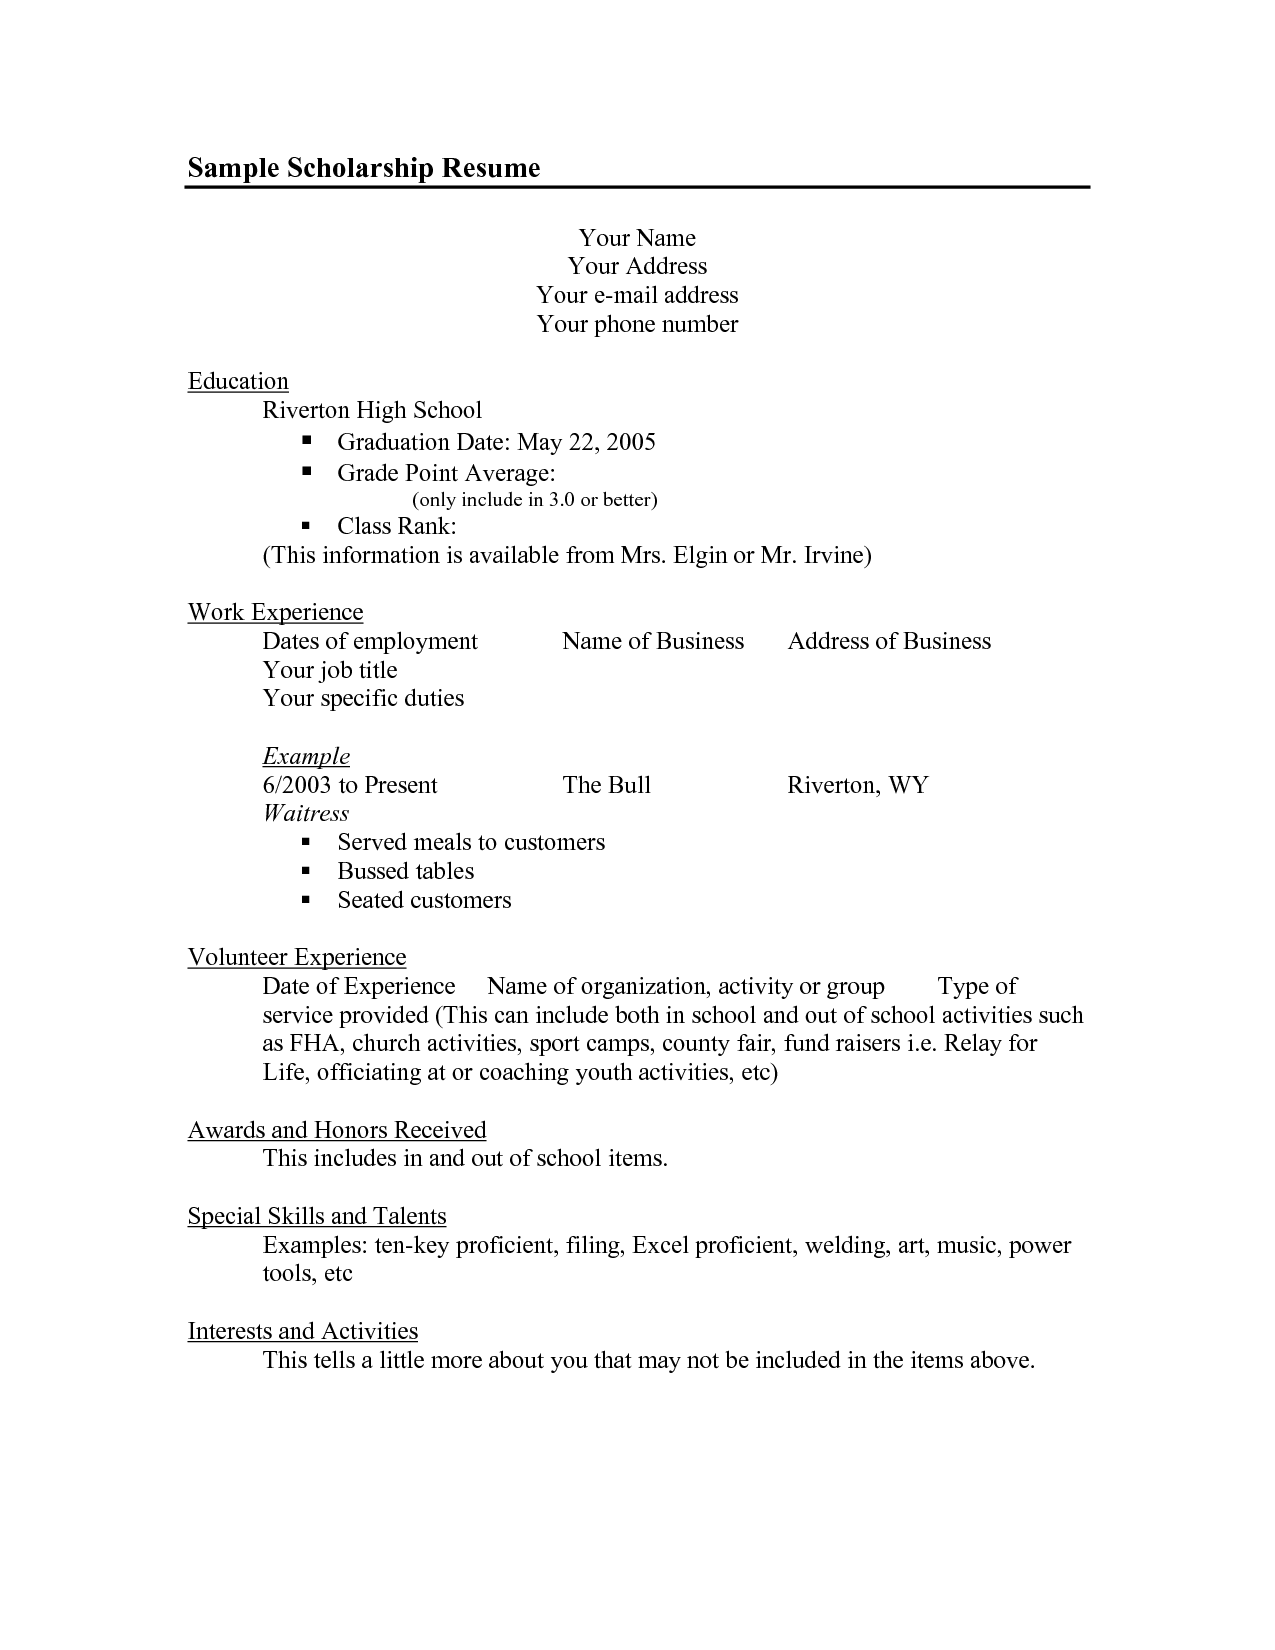 Resumes For Students Scholarship Resume Templates  Sample Scholarship Resume